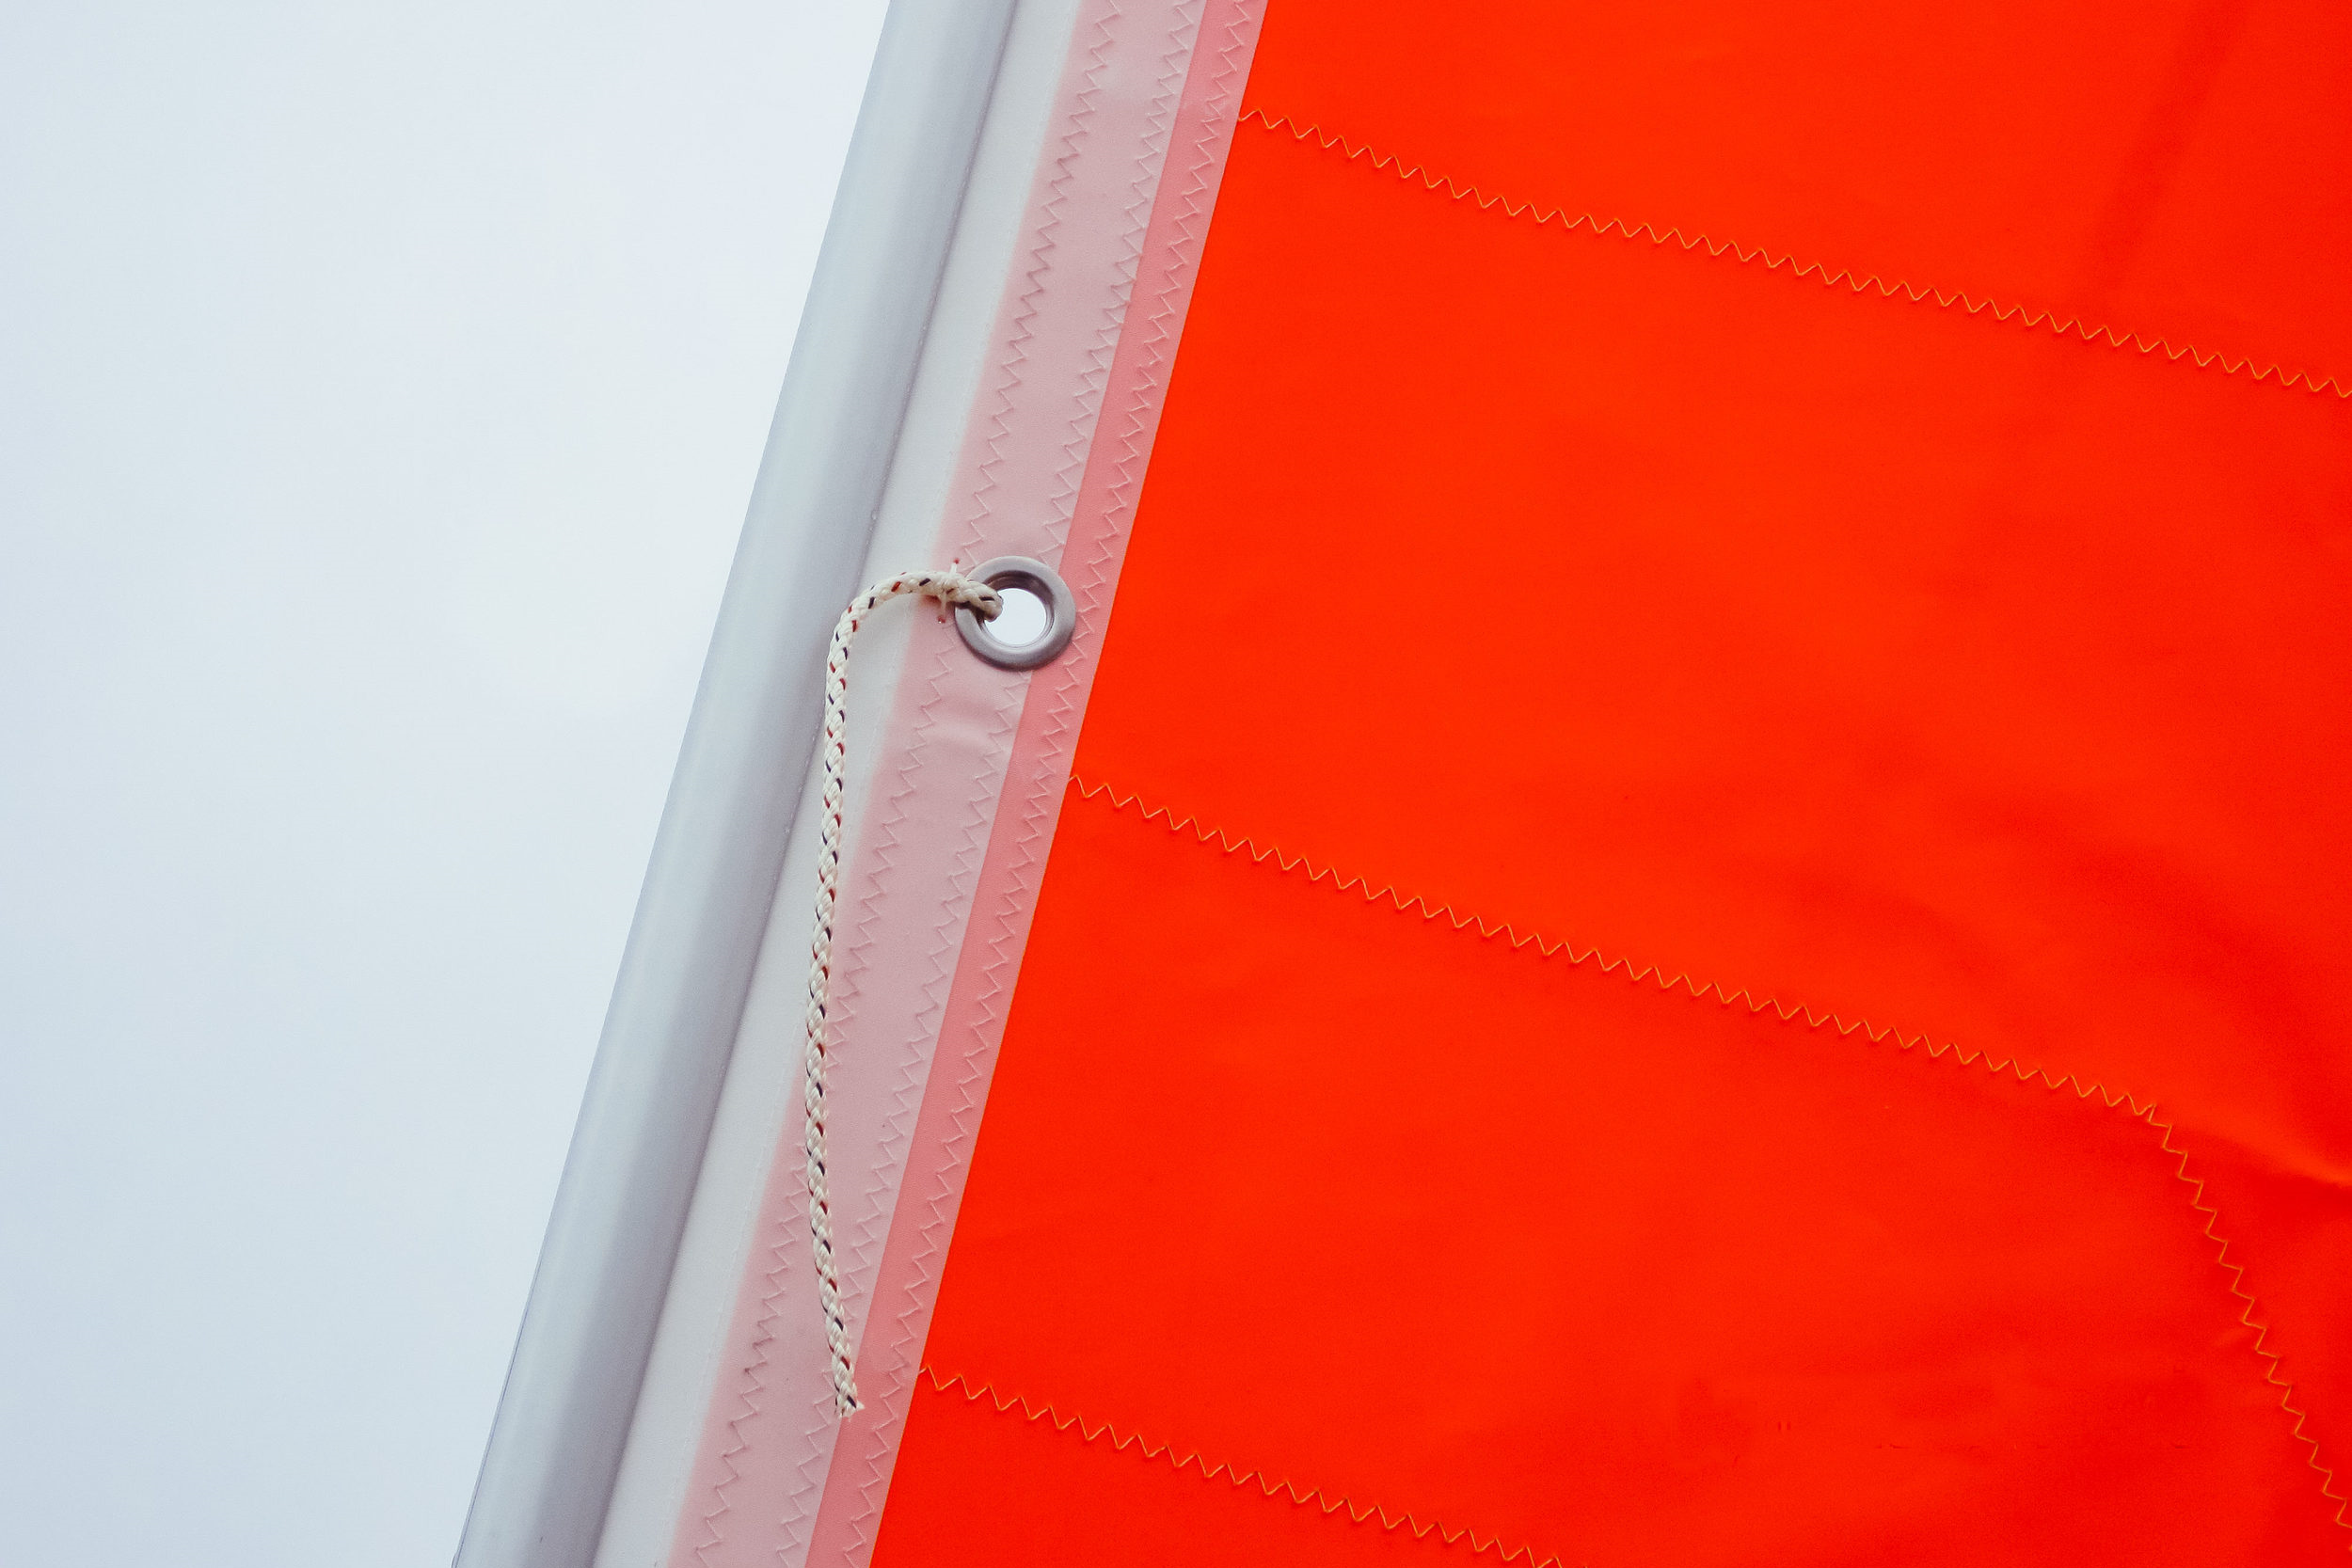 The most common alternate luff attachment is to tie around the headstay. The ties have to be permanently attached to the sail.